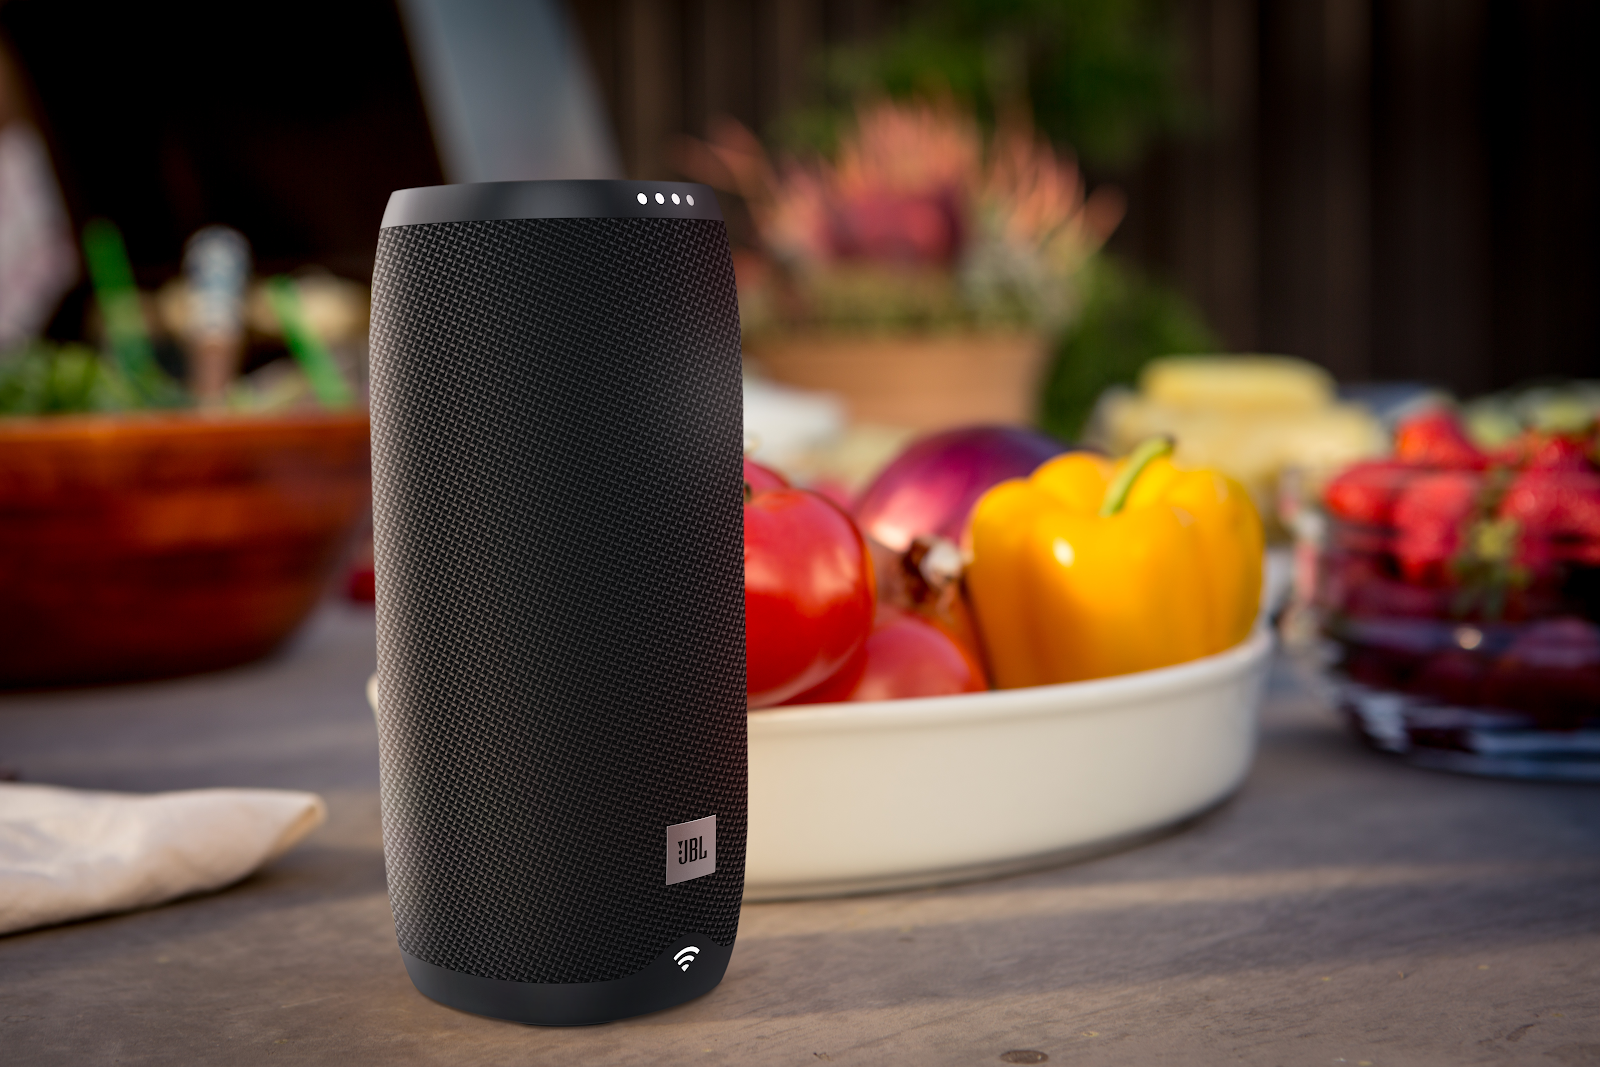 JBL wireless speaker on table with food